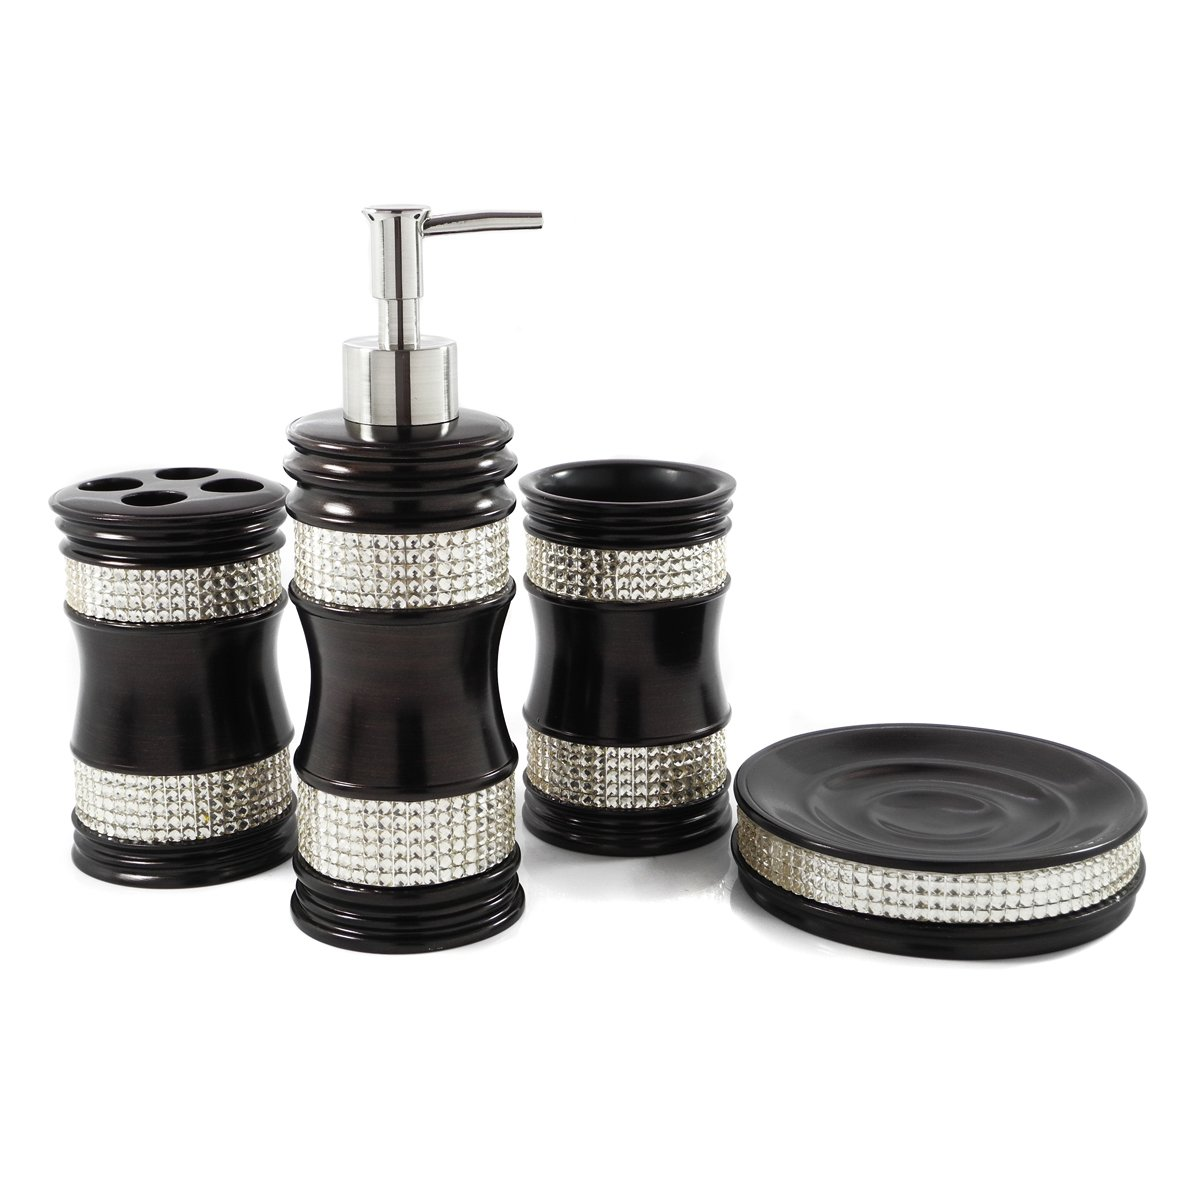 Luxury bath accessory sets images for Bathroom picture sets